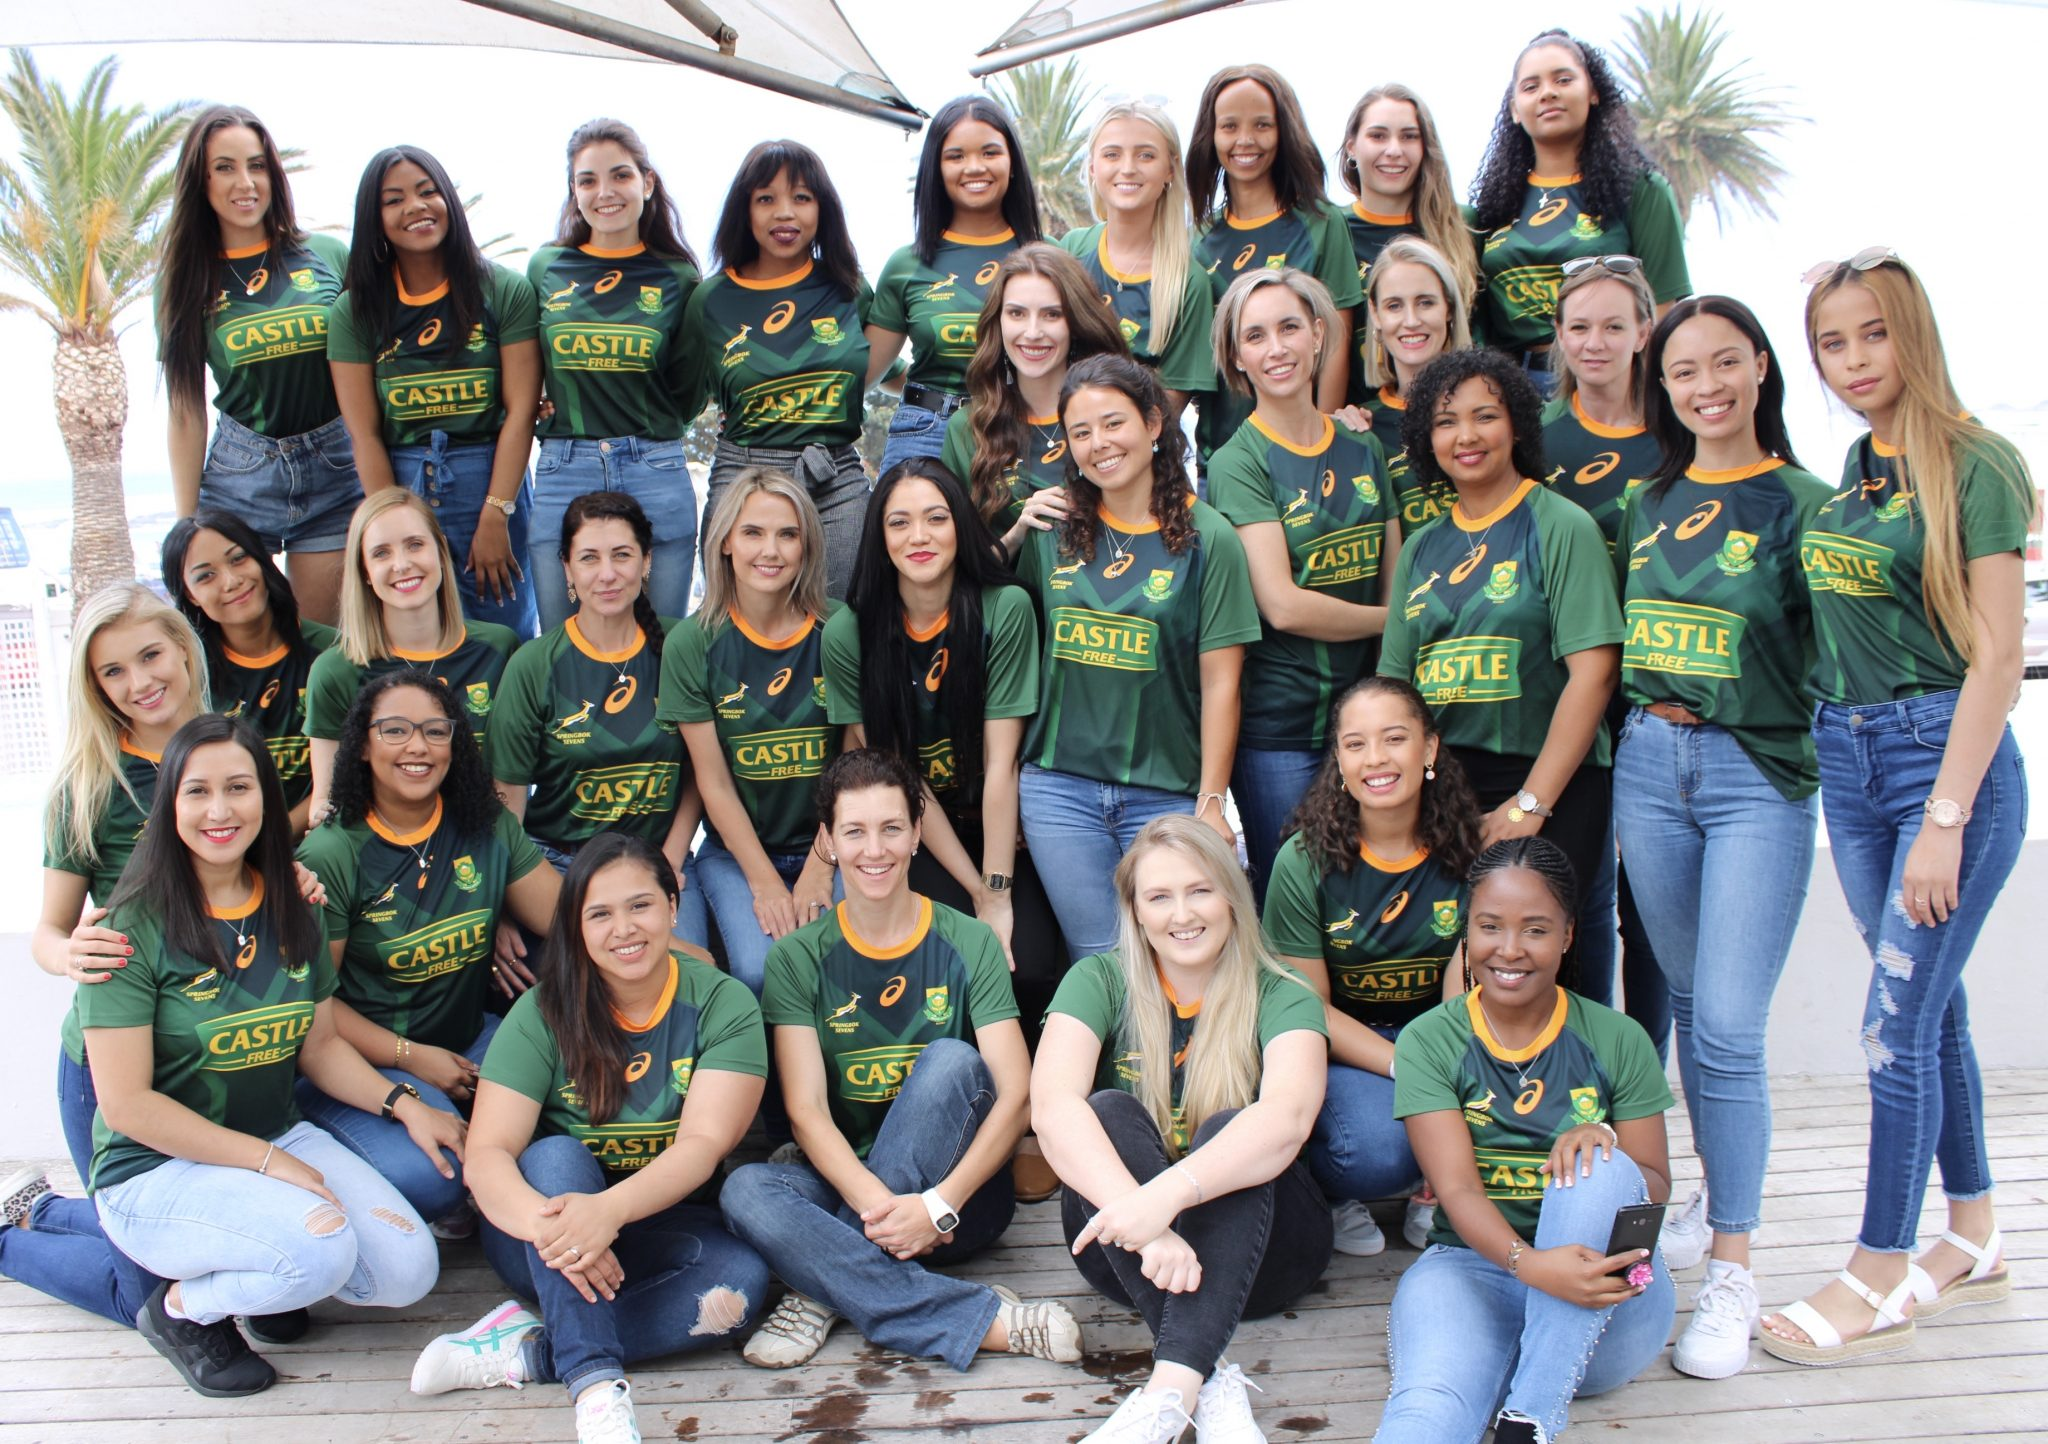 Celebrating the girlfriends and wives of the blitzboks